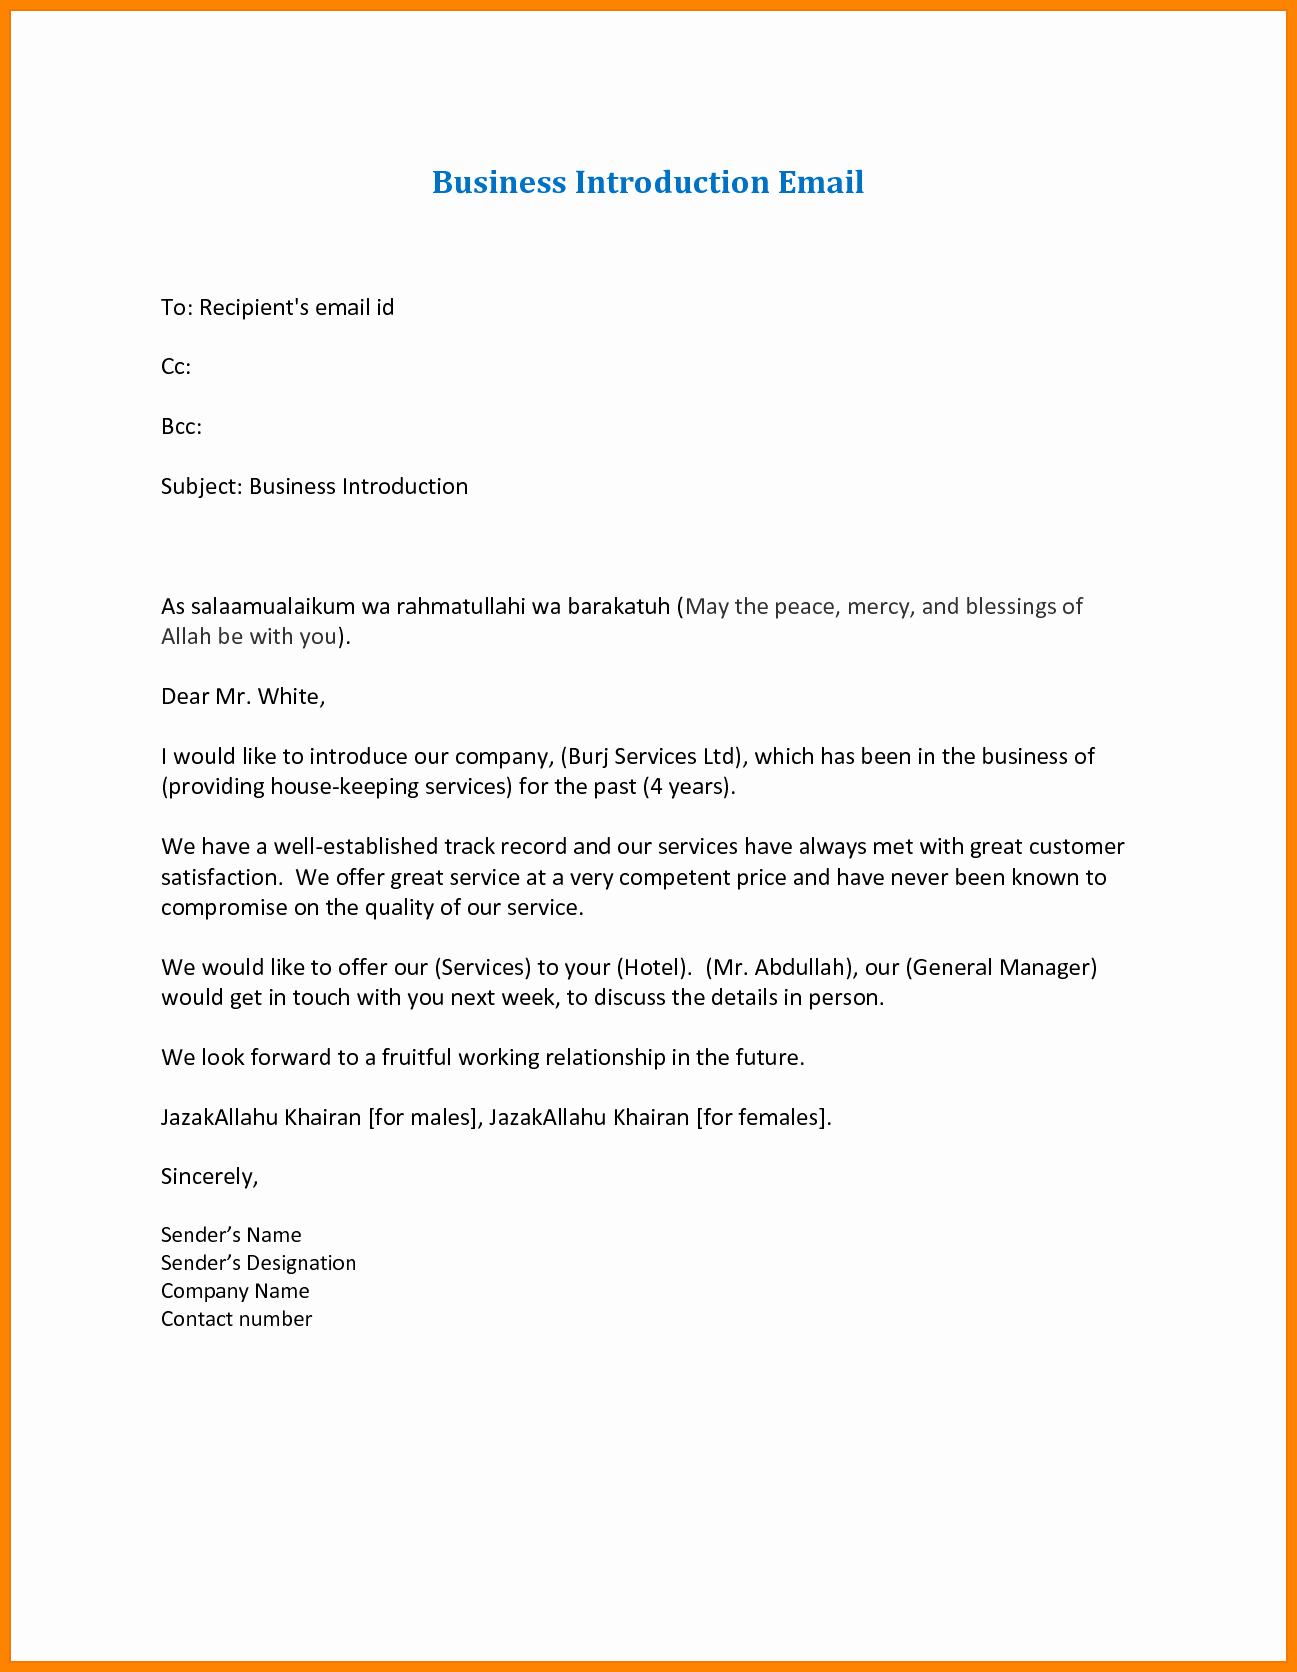 Business Introduction Email Template Inspirational 7 Introduction Emails for Business